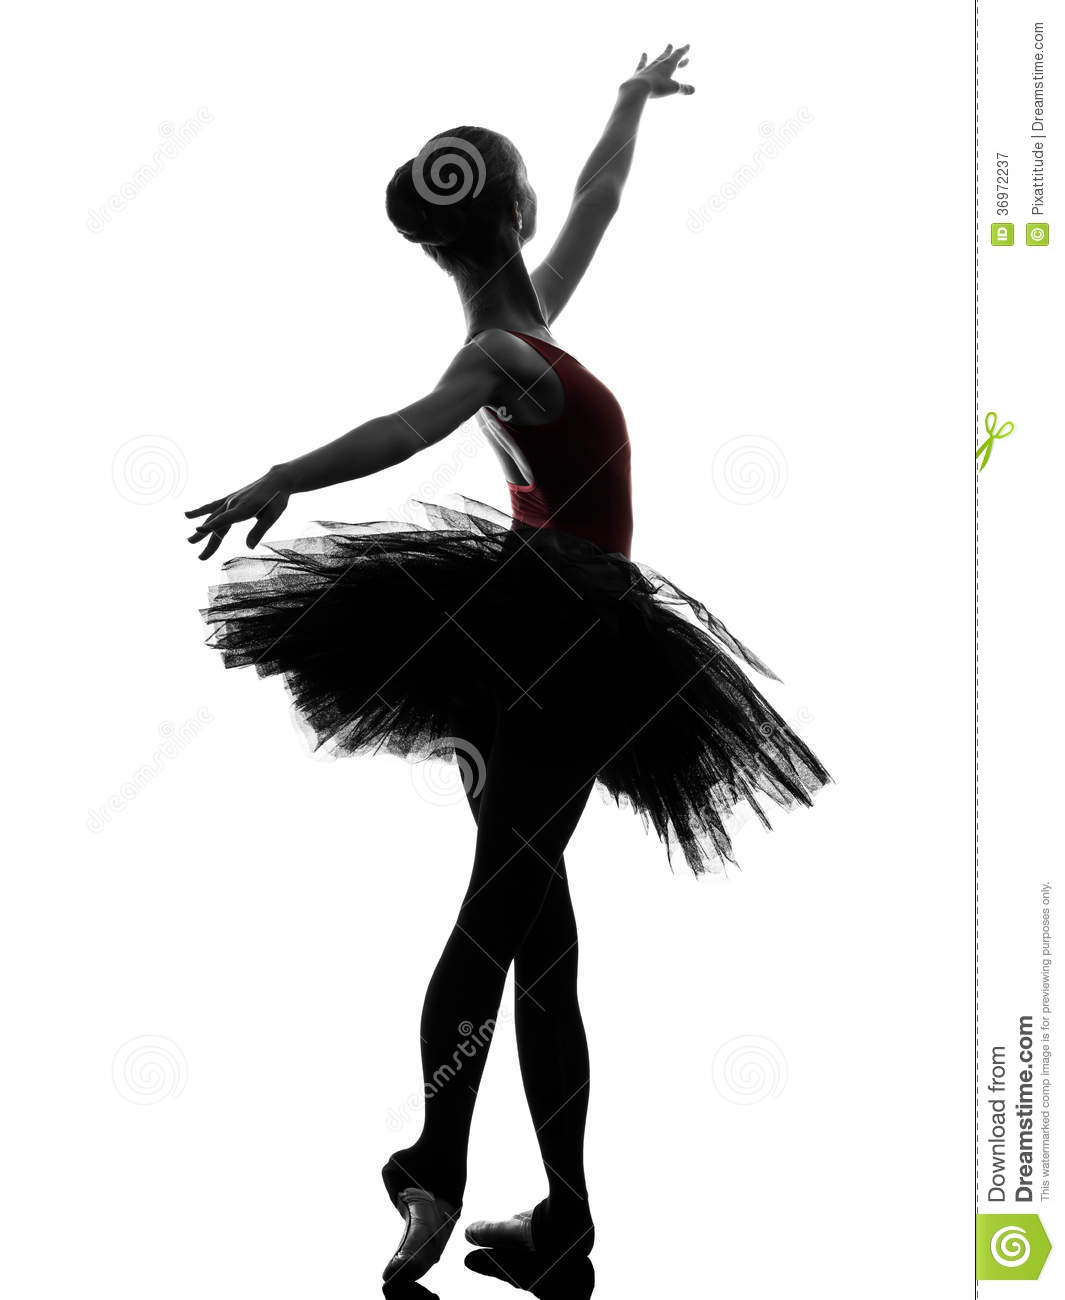 silhouette de danse de danseur classique de ballerine de jeune femme image stock image du. Black Bedroom Furniture Sets. Home Design Ideas